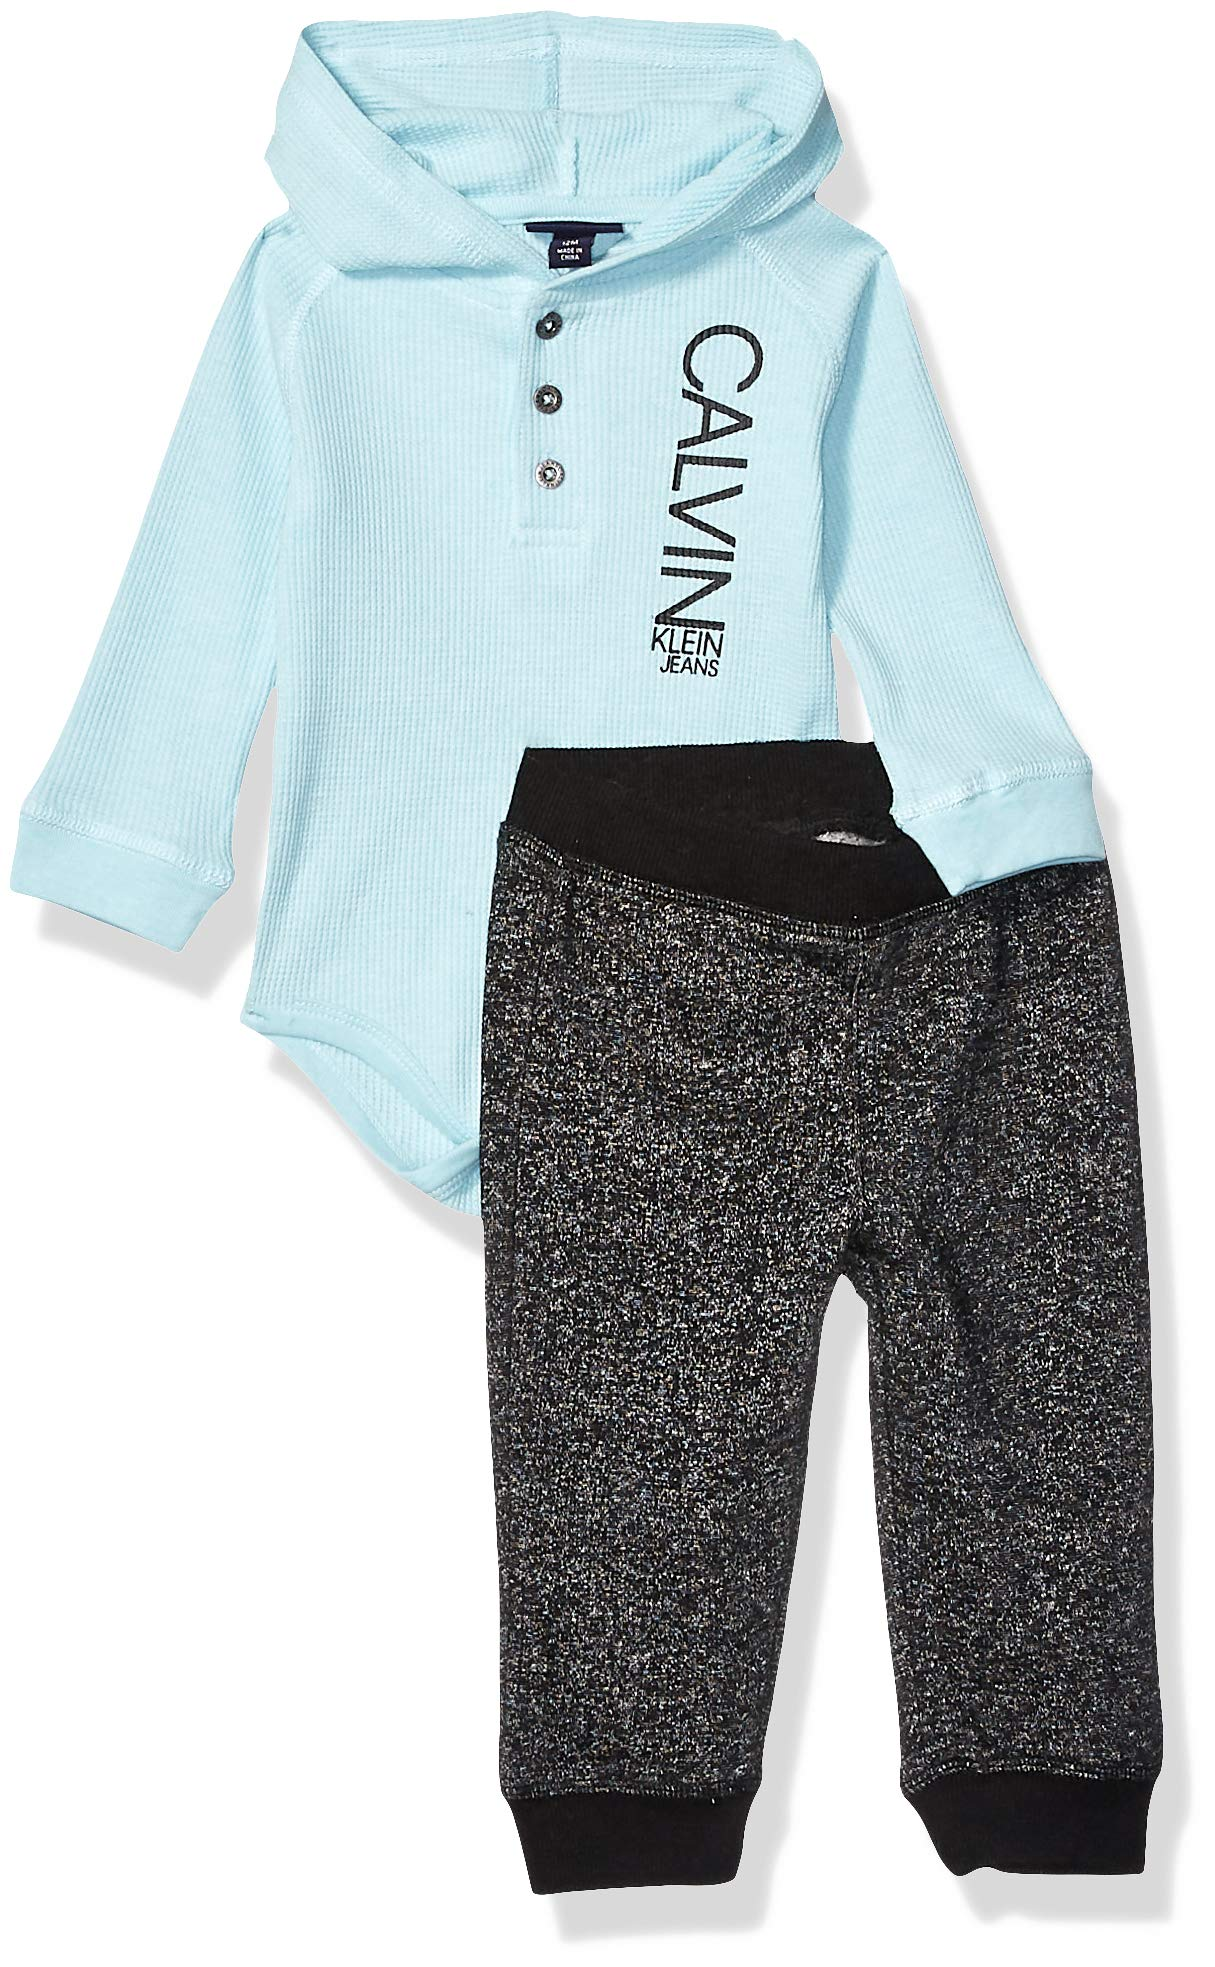 Calvin Klein Baby Boys 2 Pieces Bodysuit Pants Set